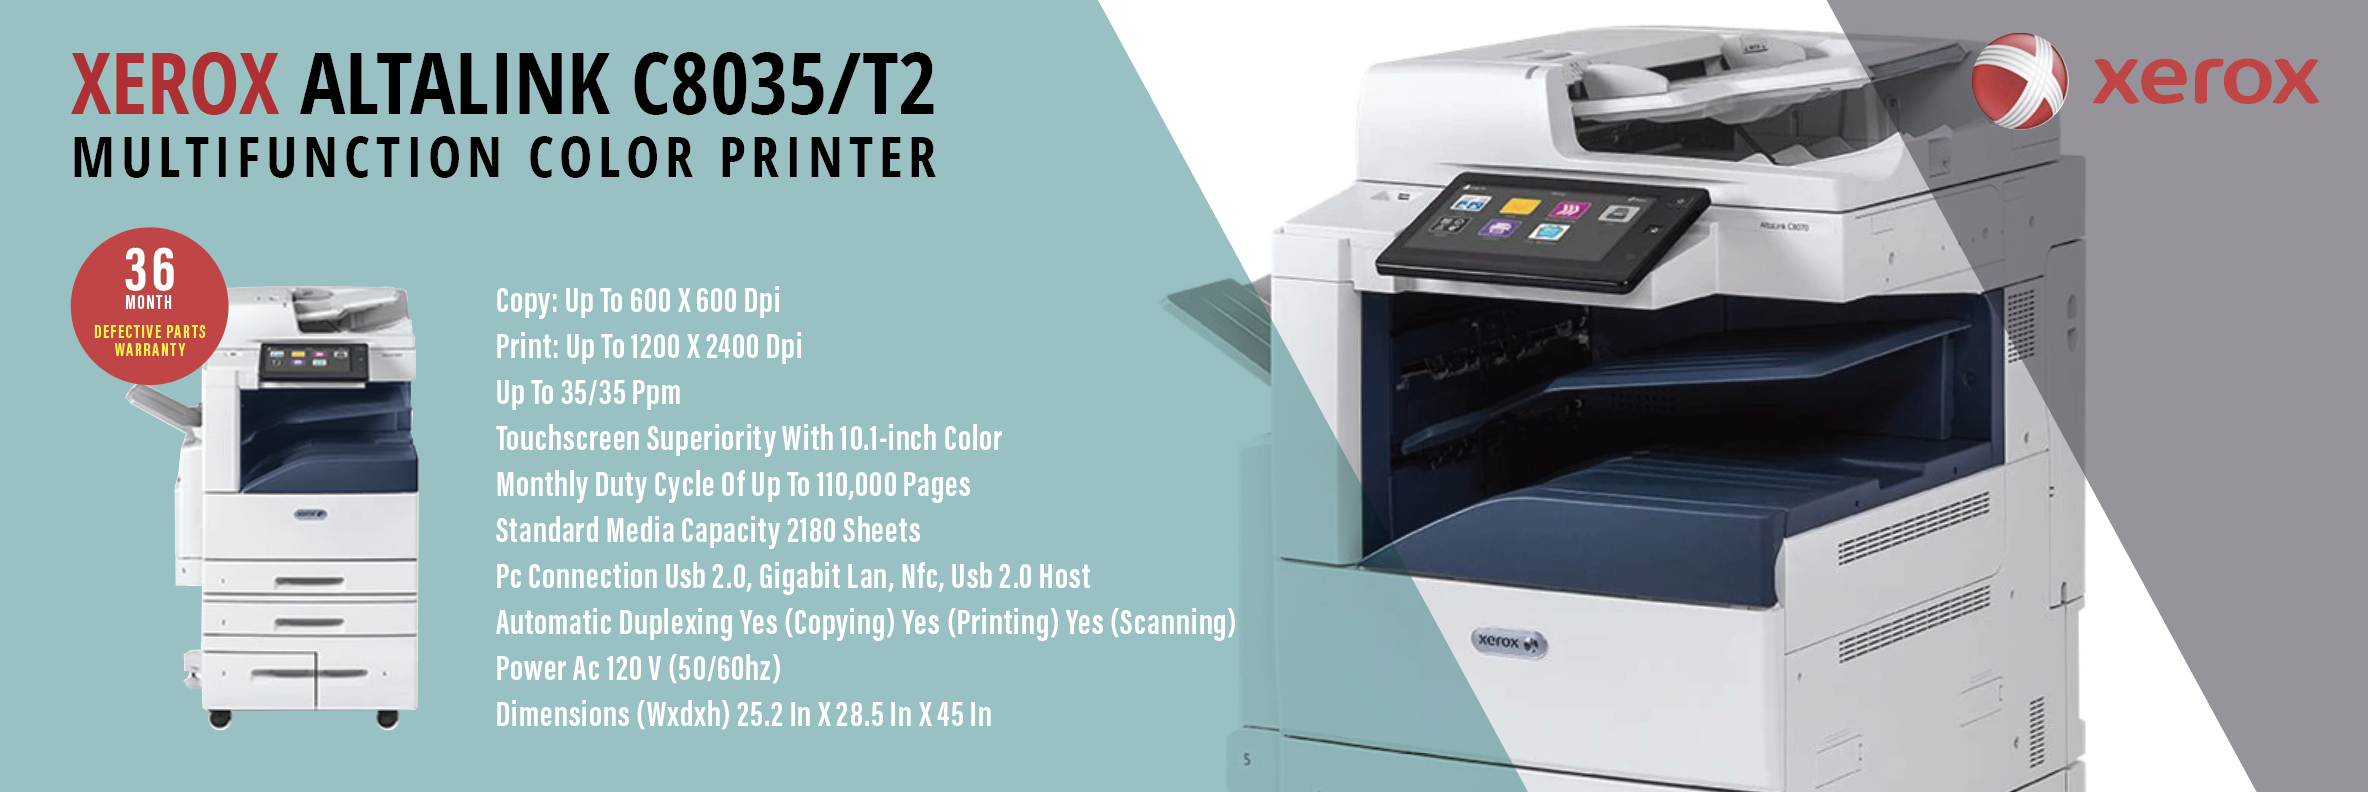 Xerox AltaLink C8035/H2 - Multifunction Color Printer